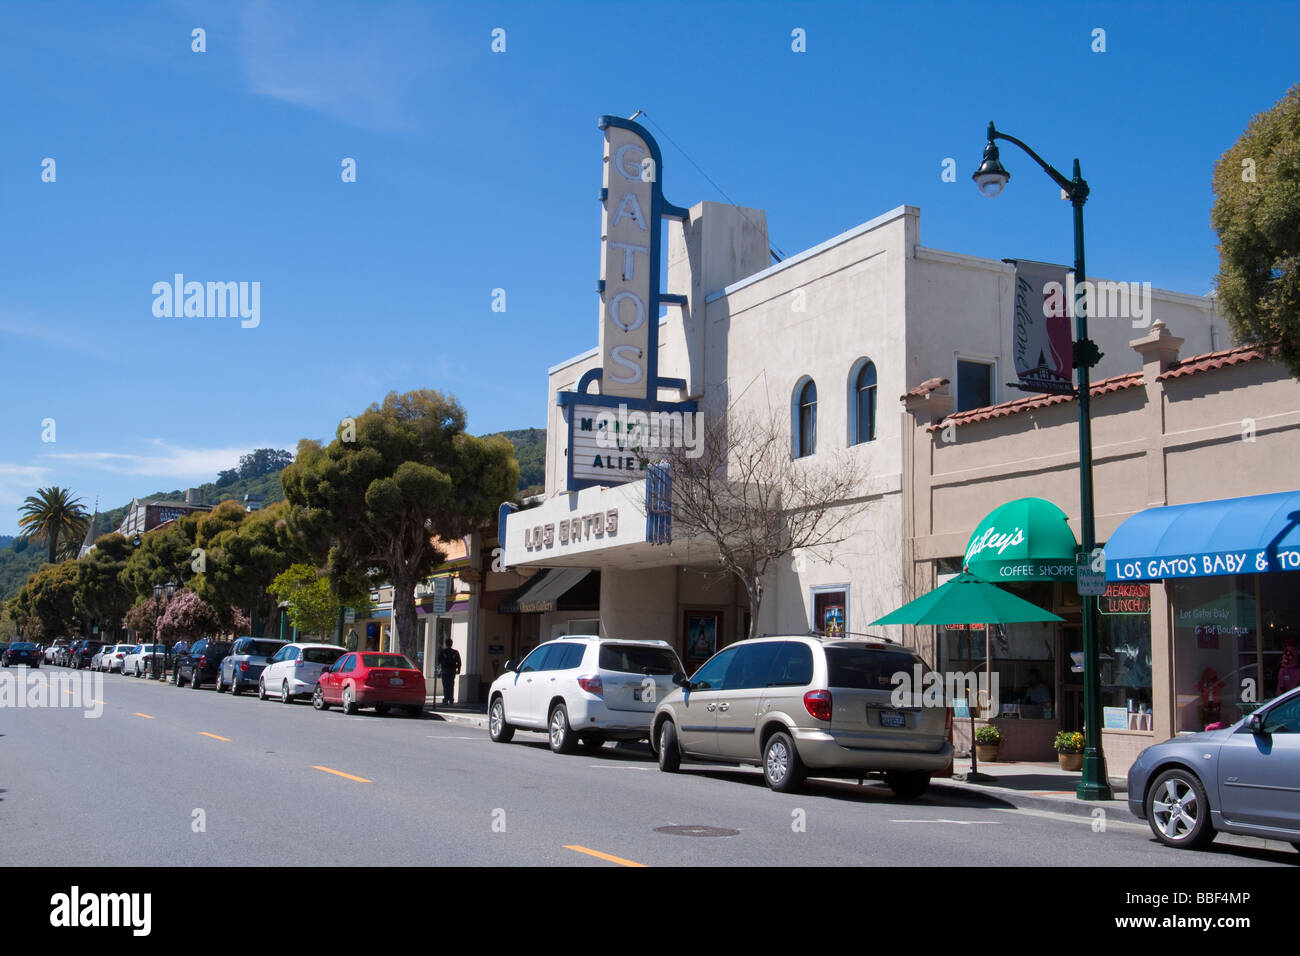 Street scene on main street of downtown Los Gatos California with old fashioned theater architecture Stock Photo